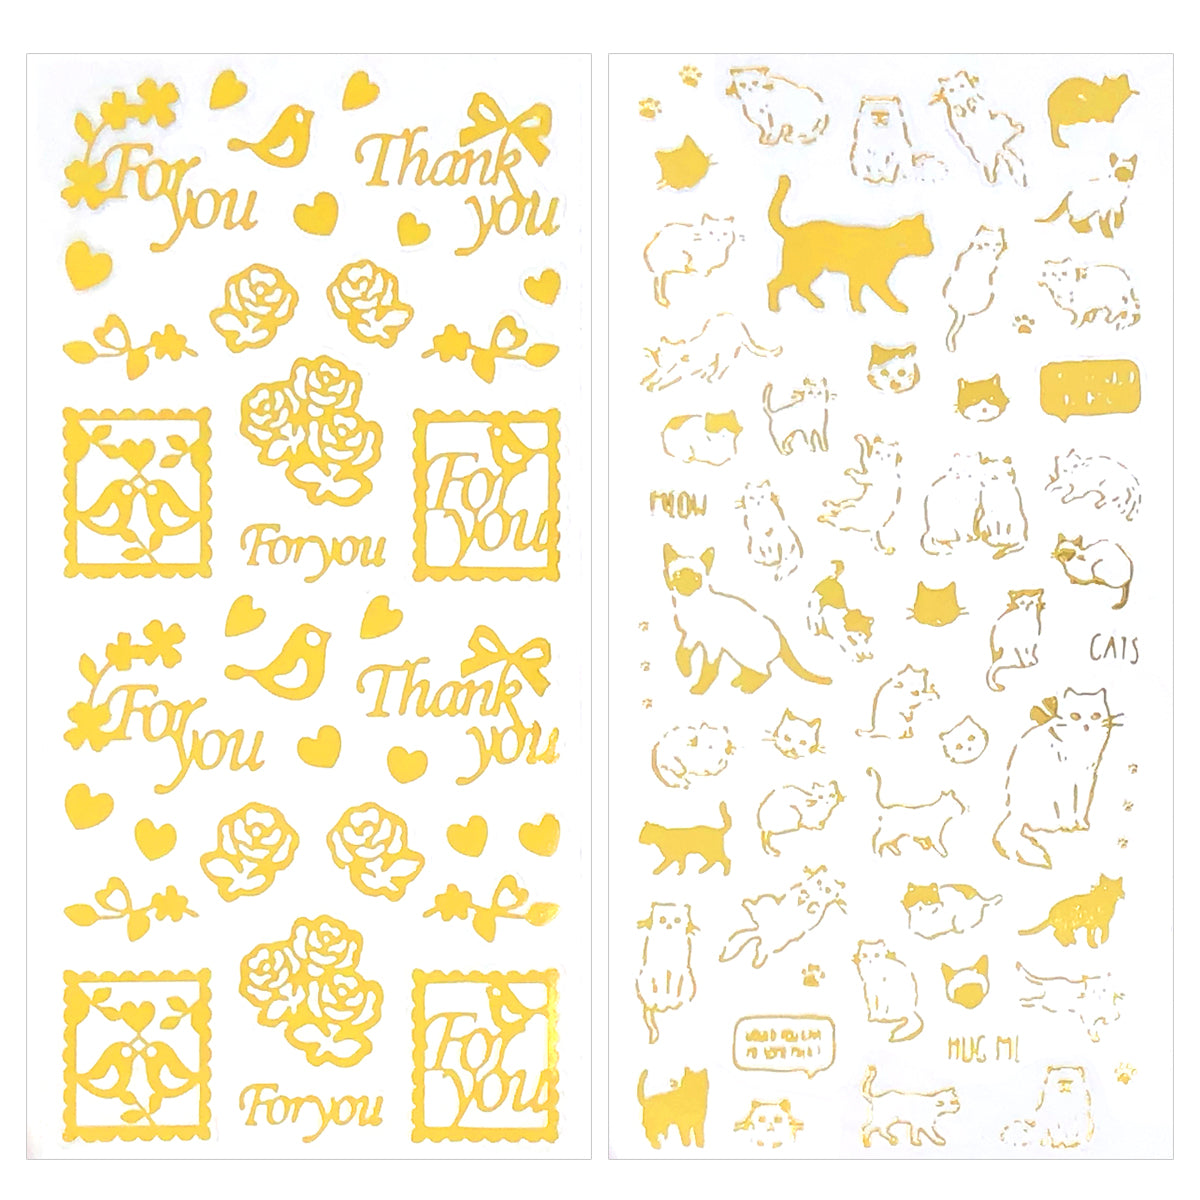 Wrapables Decorative Transparent Clear Film Stickers, Resin Stickers for DIY Crafts, Stationery, Diary (4 Sheets), Inspirational Quotes